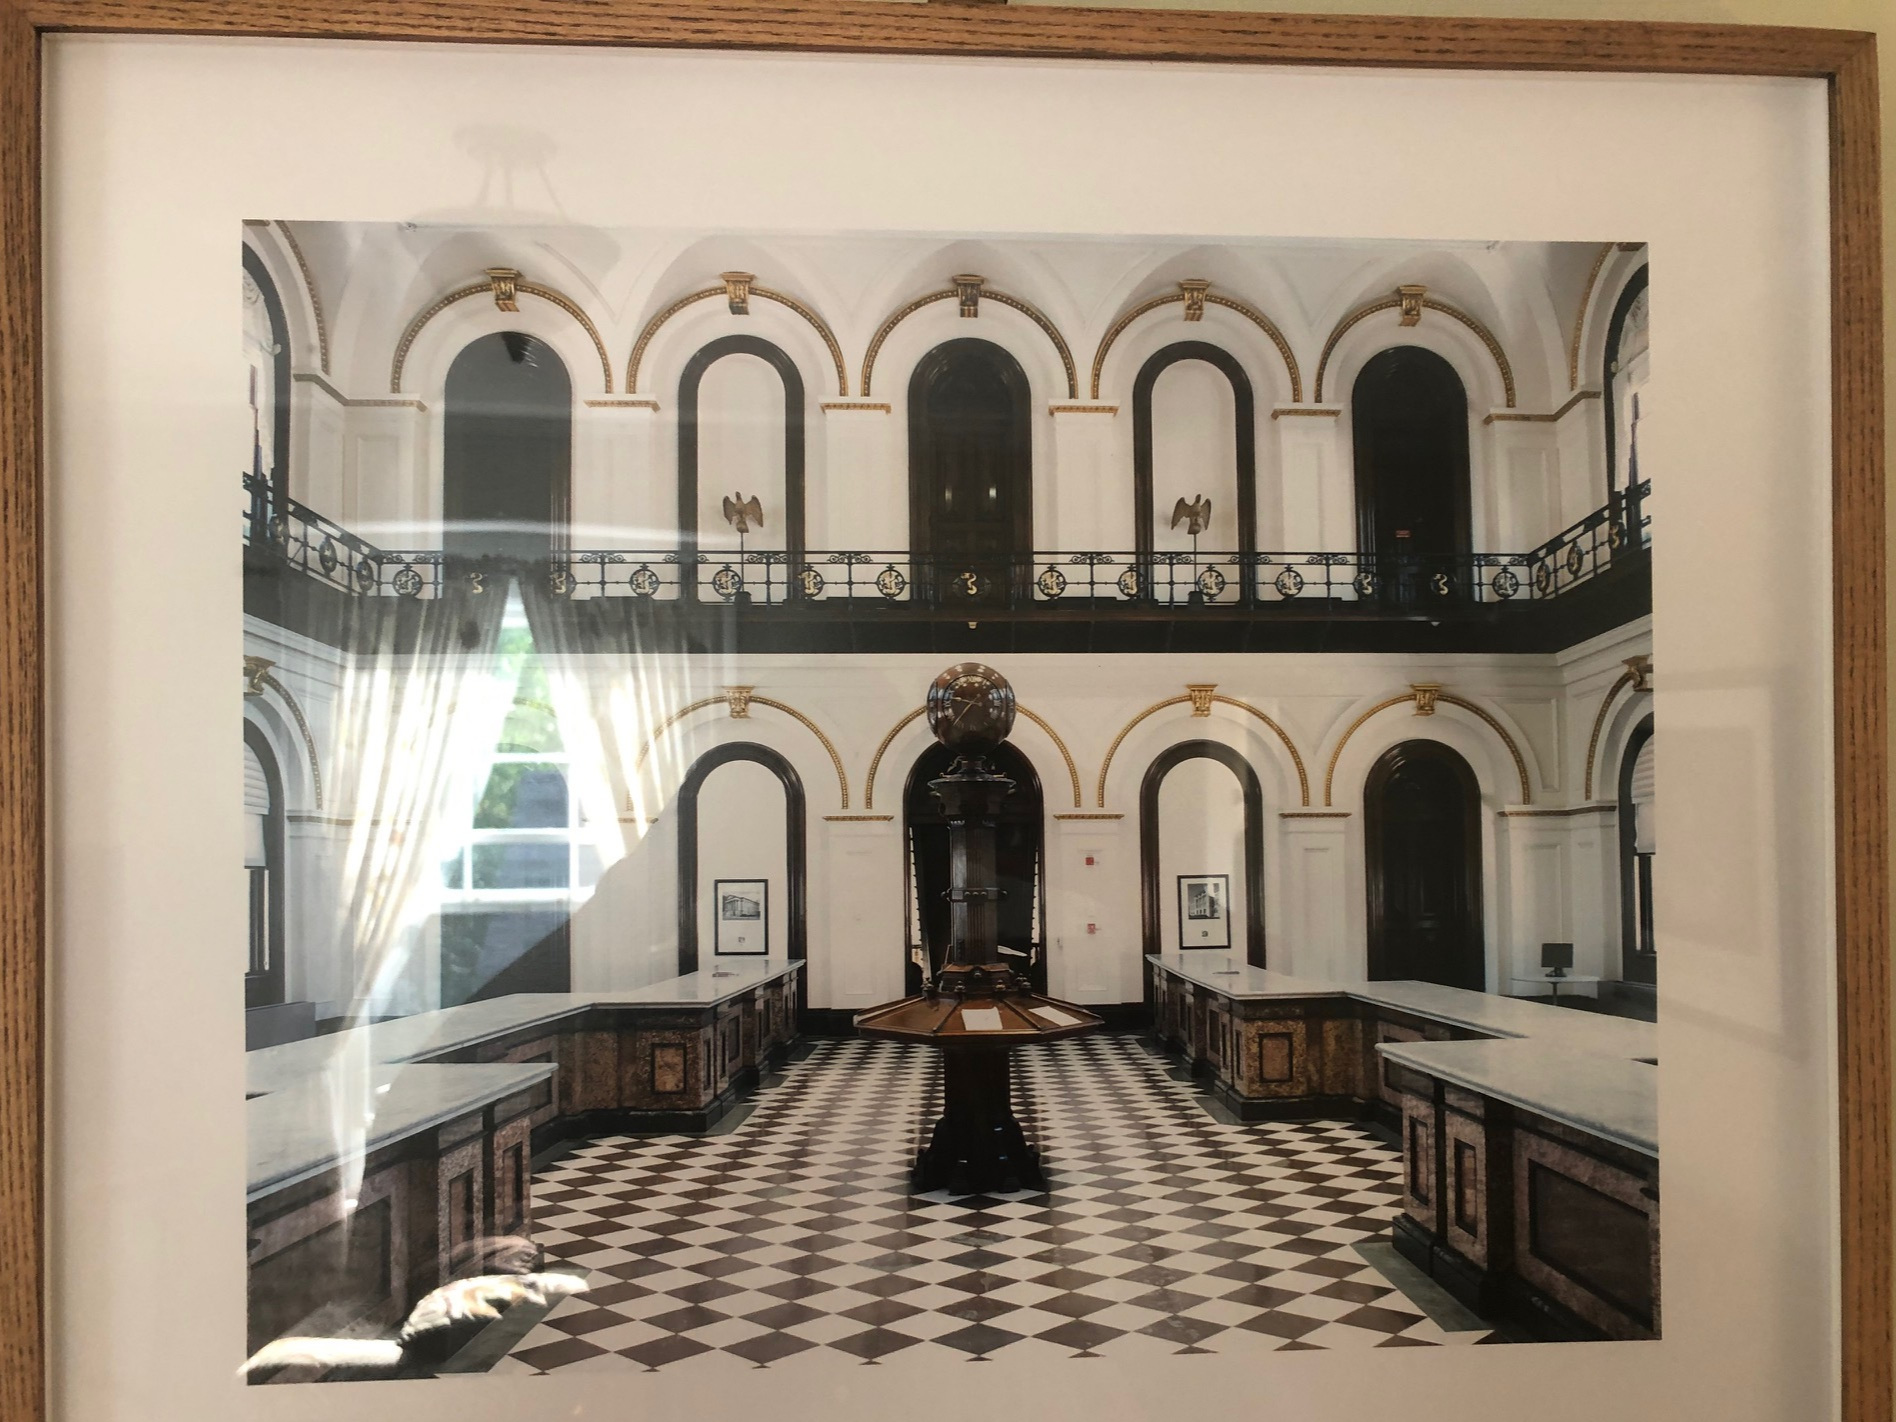 My first piece of MECA art, a framed photo of the interior of the U.S. Custom House by Mark Marchesi.